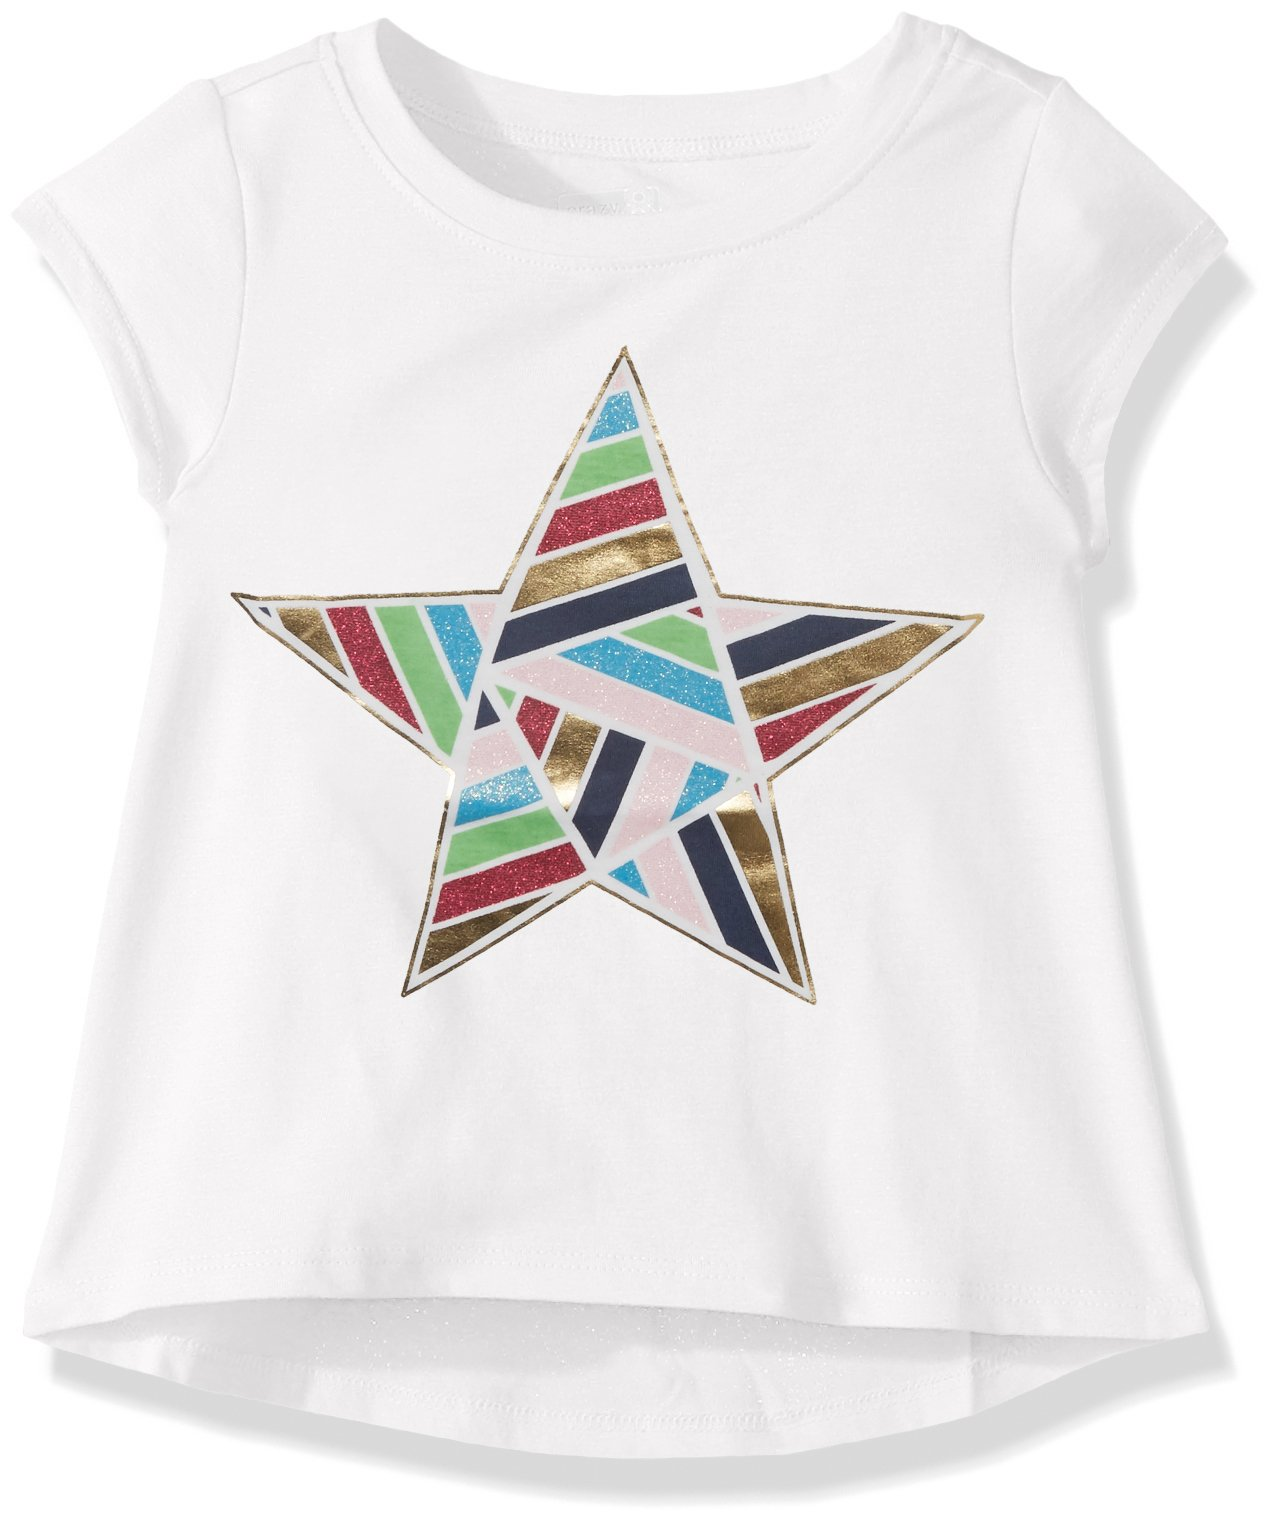 Crazy 8 Girls' Toddler Short-Sleeve Drapey Graphic Tee, White 2T